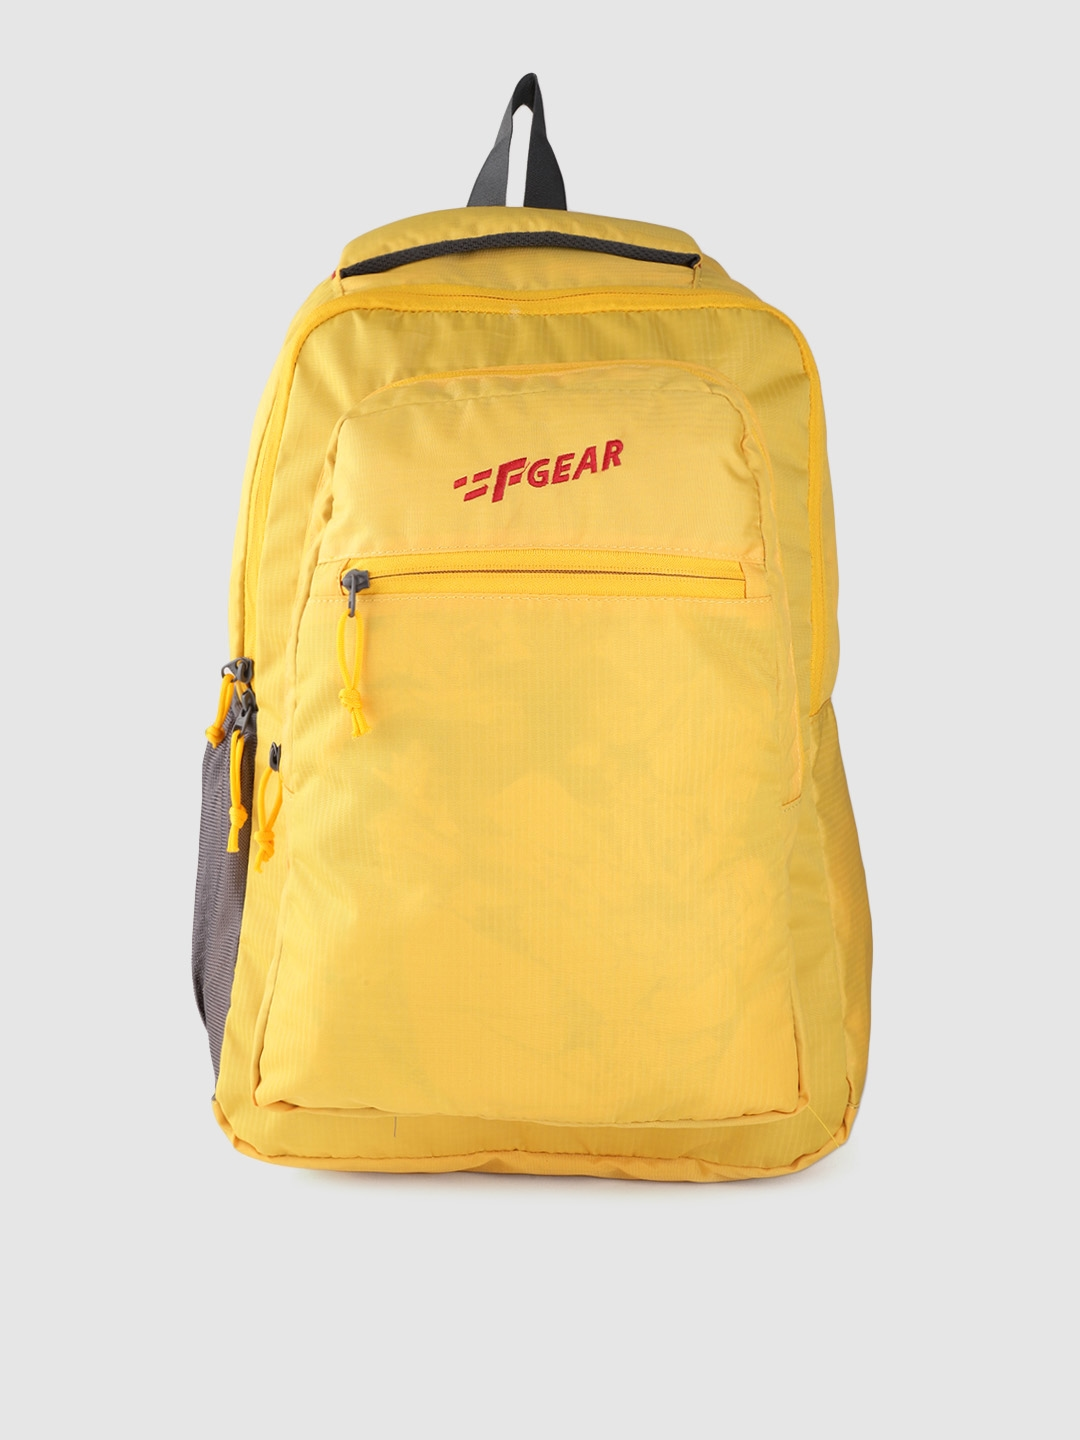 F Gear Unisex Yellow Solid Laptop Backpack